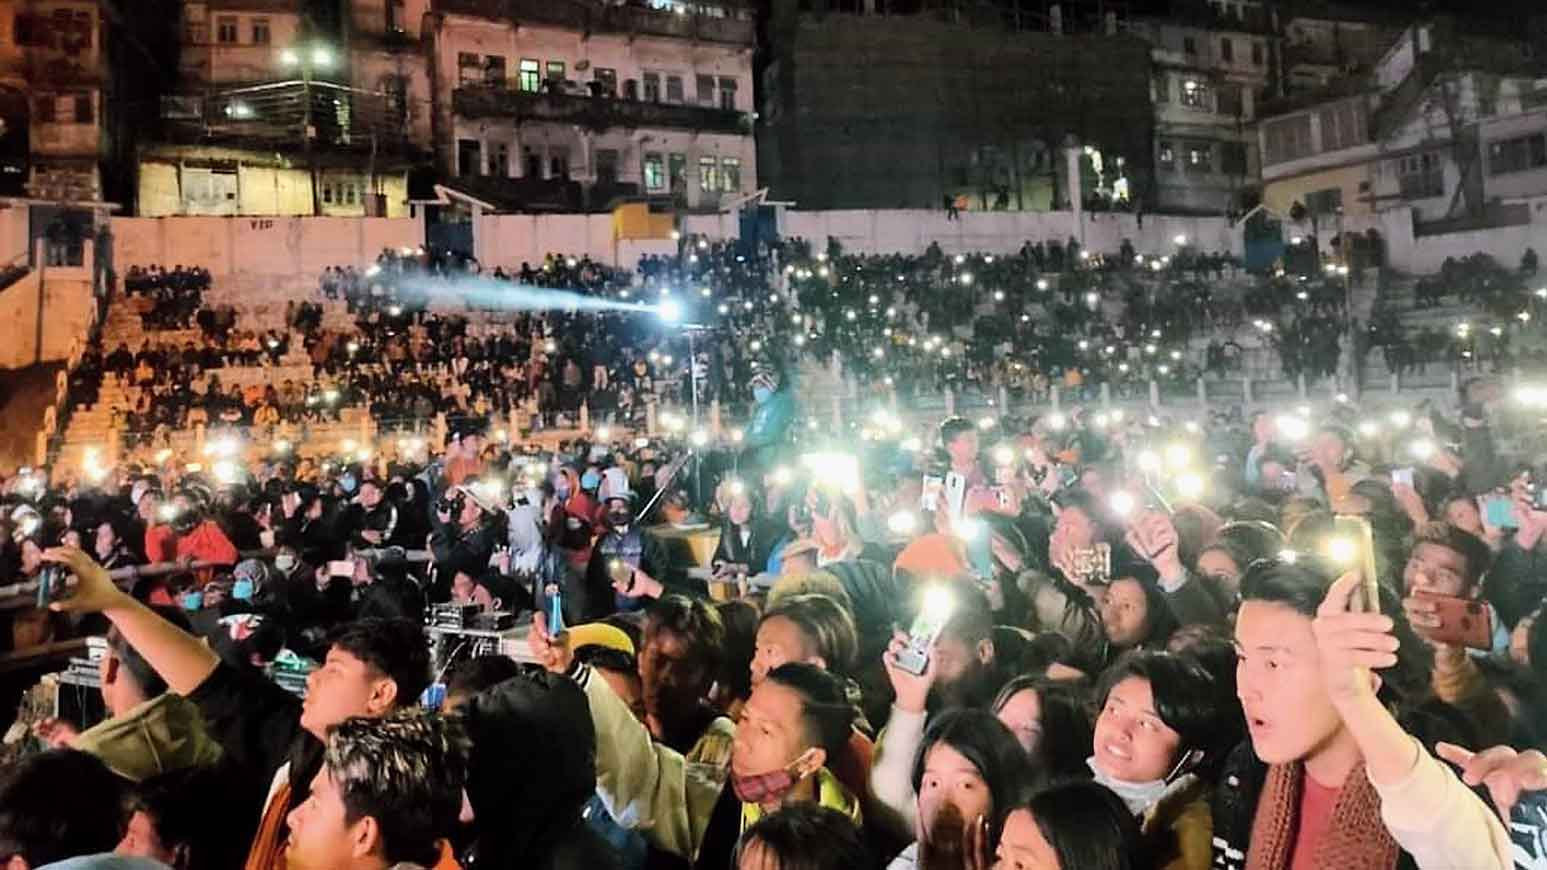 The audience at the musical show in Kalimpong on Sunday night